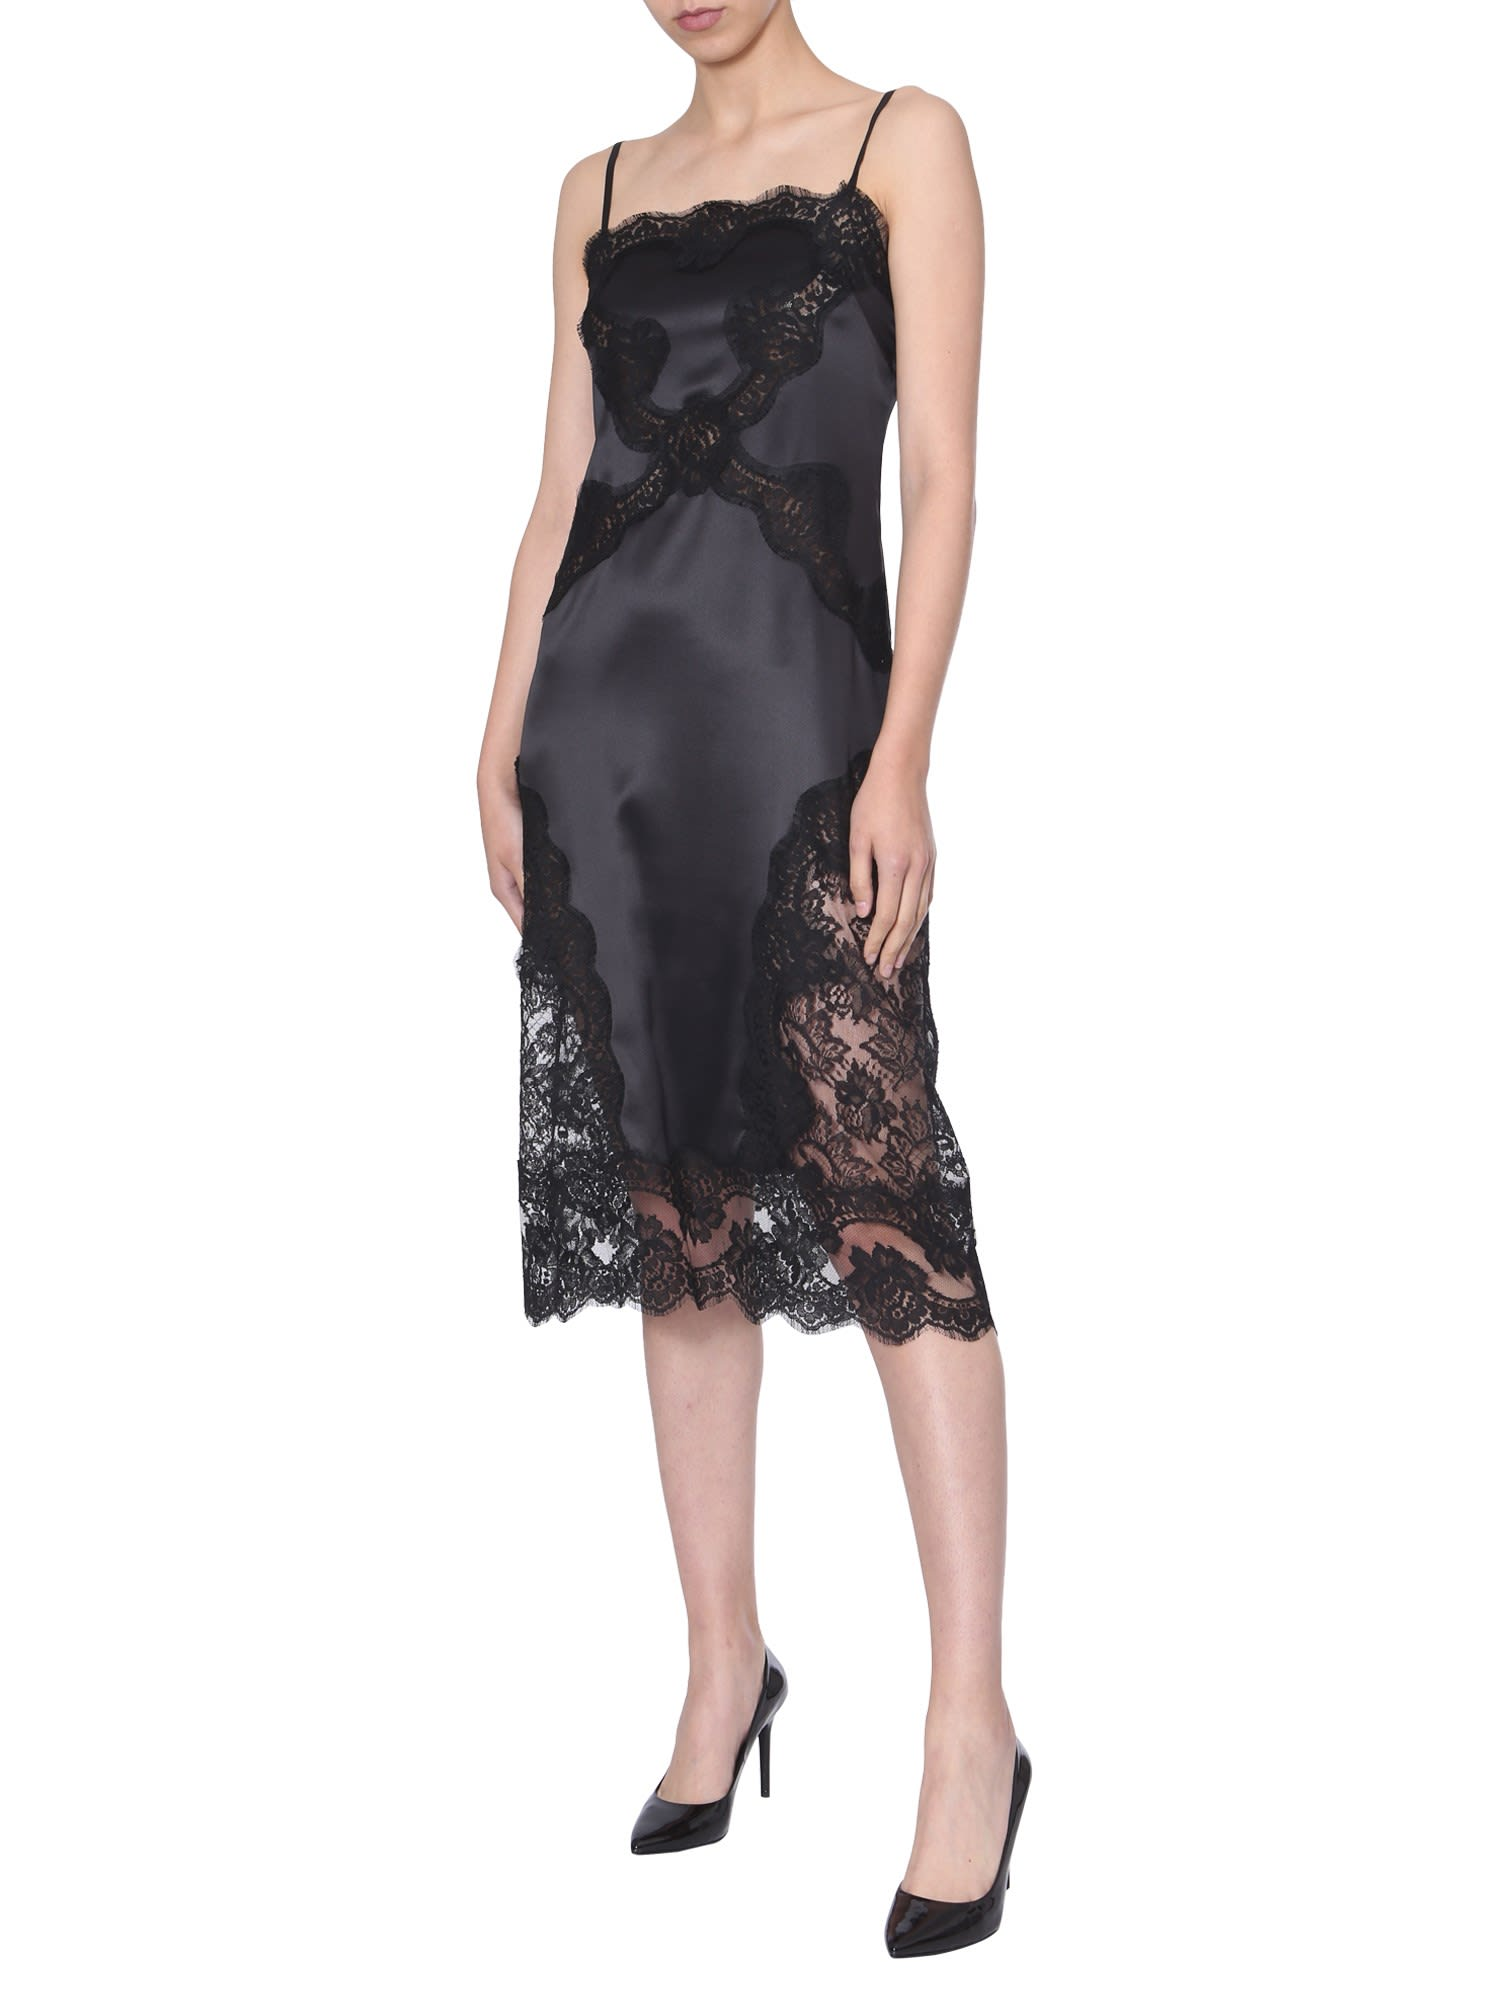 Dolce & Gabbana Dress With Lace Inserts